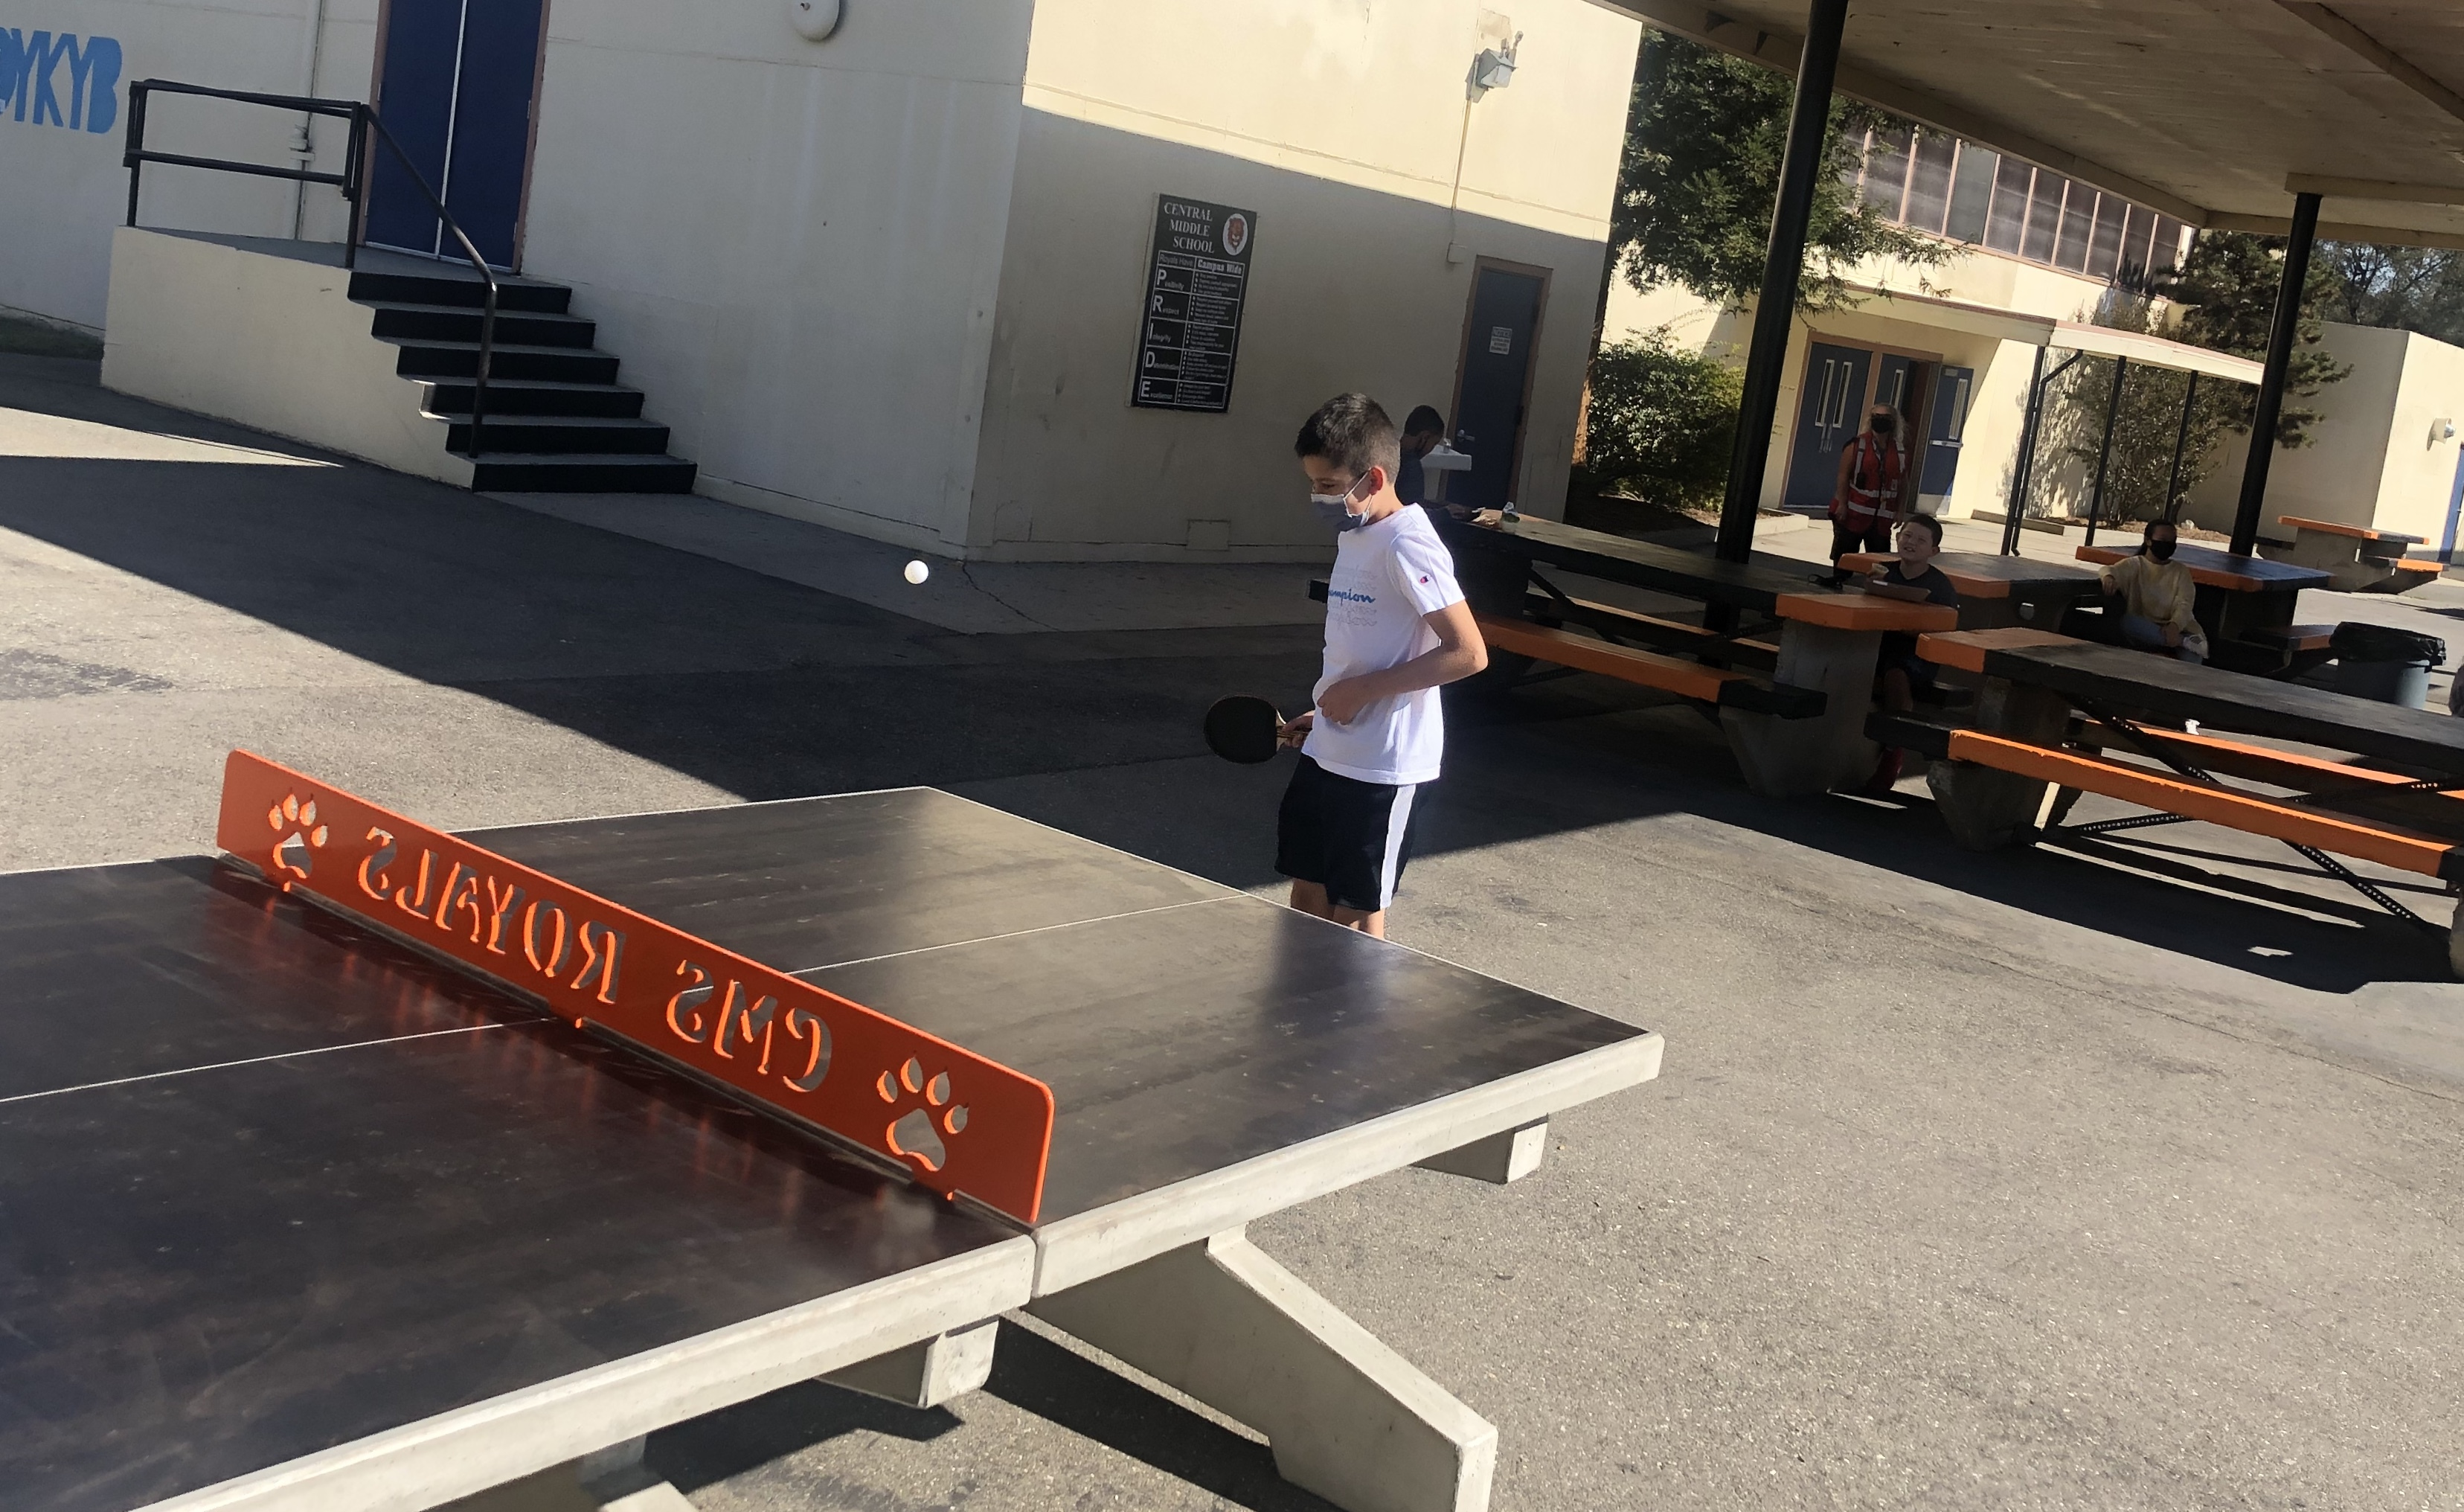 New outside table tennis games at Central!